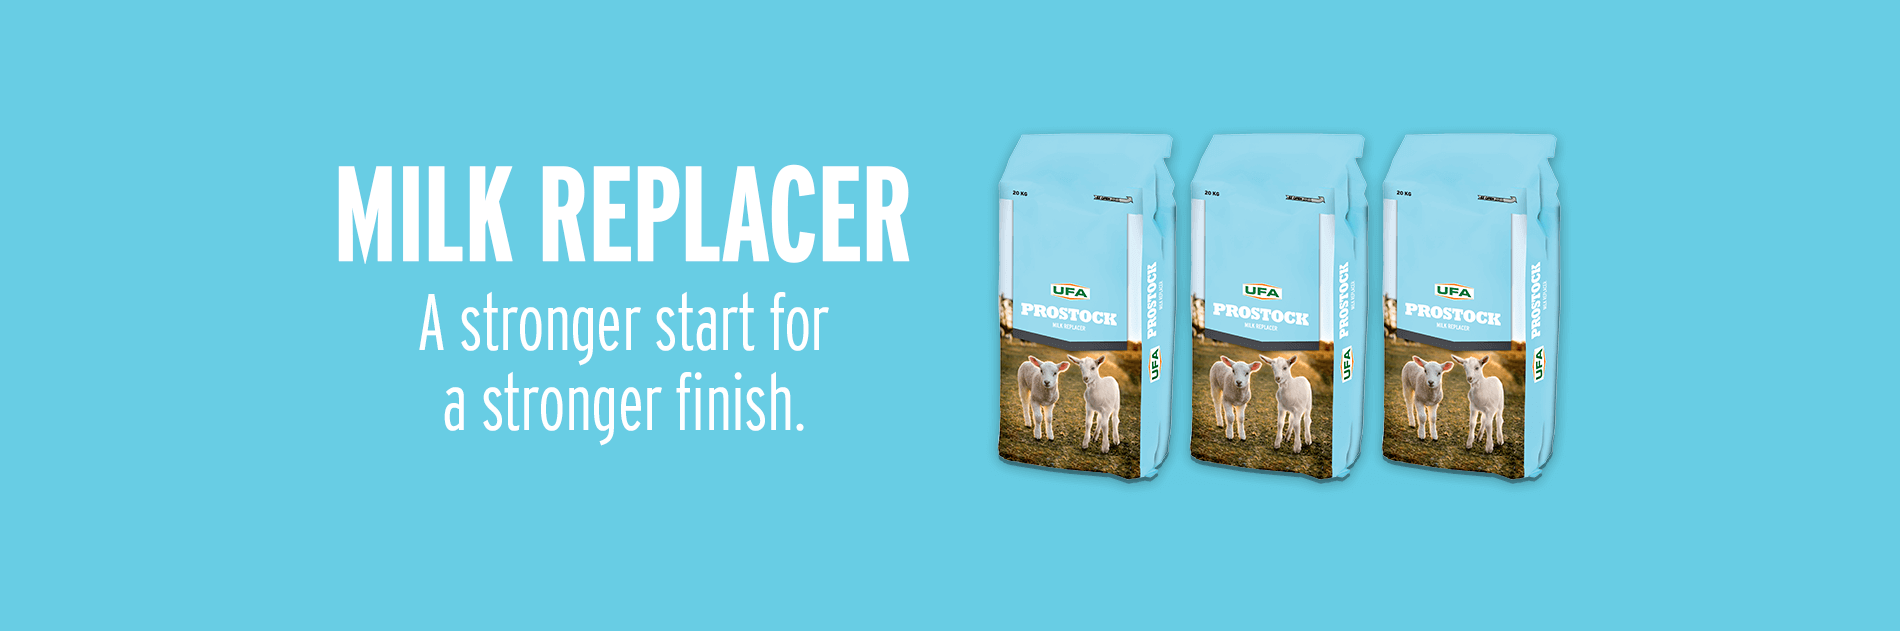 Milk Replacer - A Stronger Start for a Stronger Finish